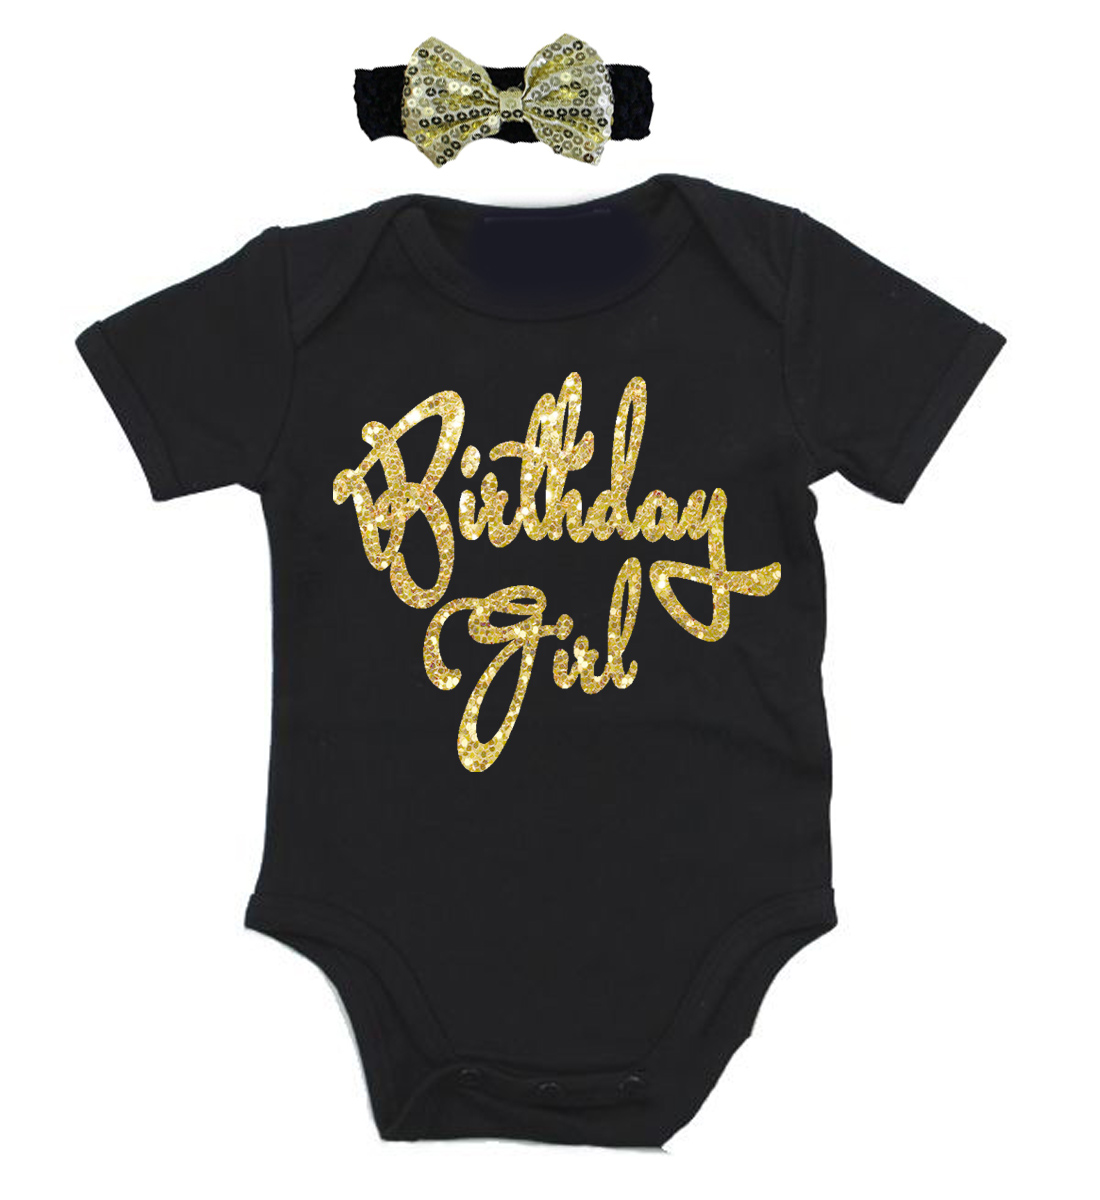 9bab3235a Cute Glitter Gold Clothing For Babies - Funny Onesies - Cute Baby ...